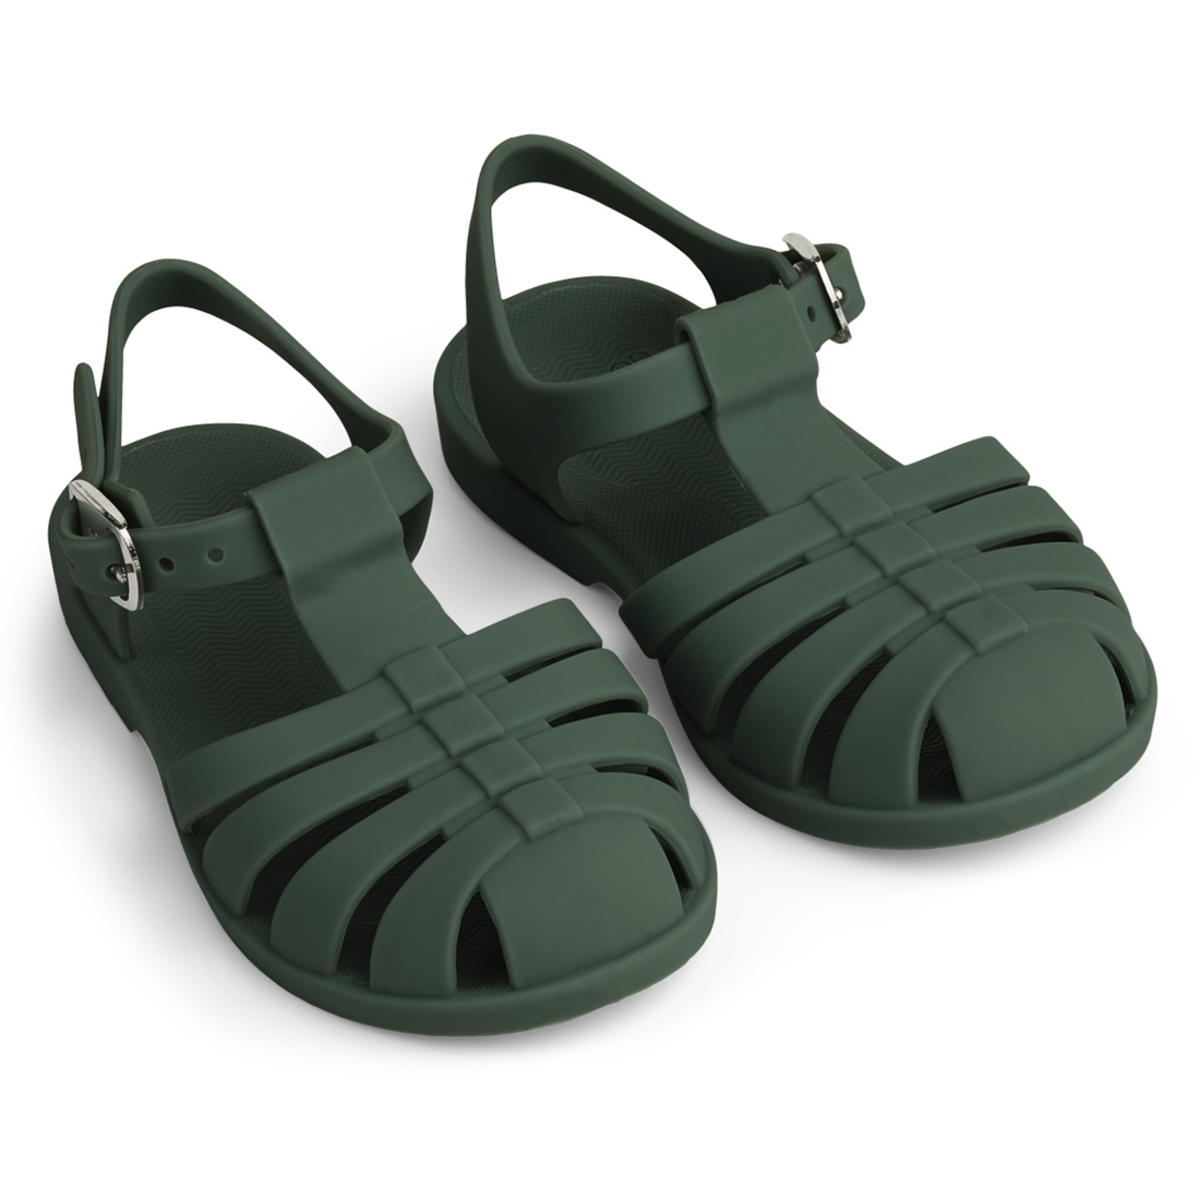 Chaussons & Chaussures Sandales Bre Garden Green - 21 Sandales Bre Garden Green - 21